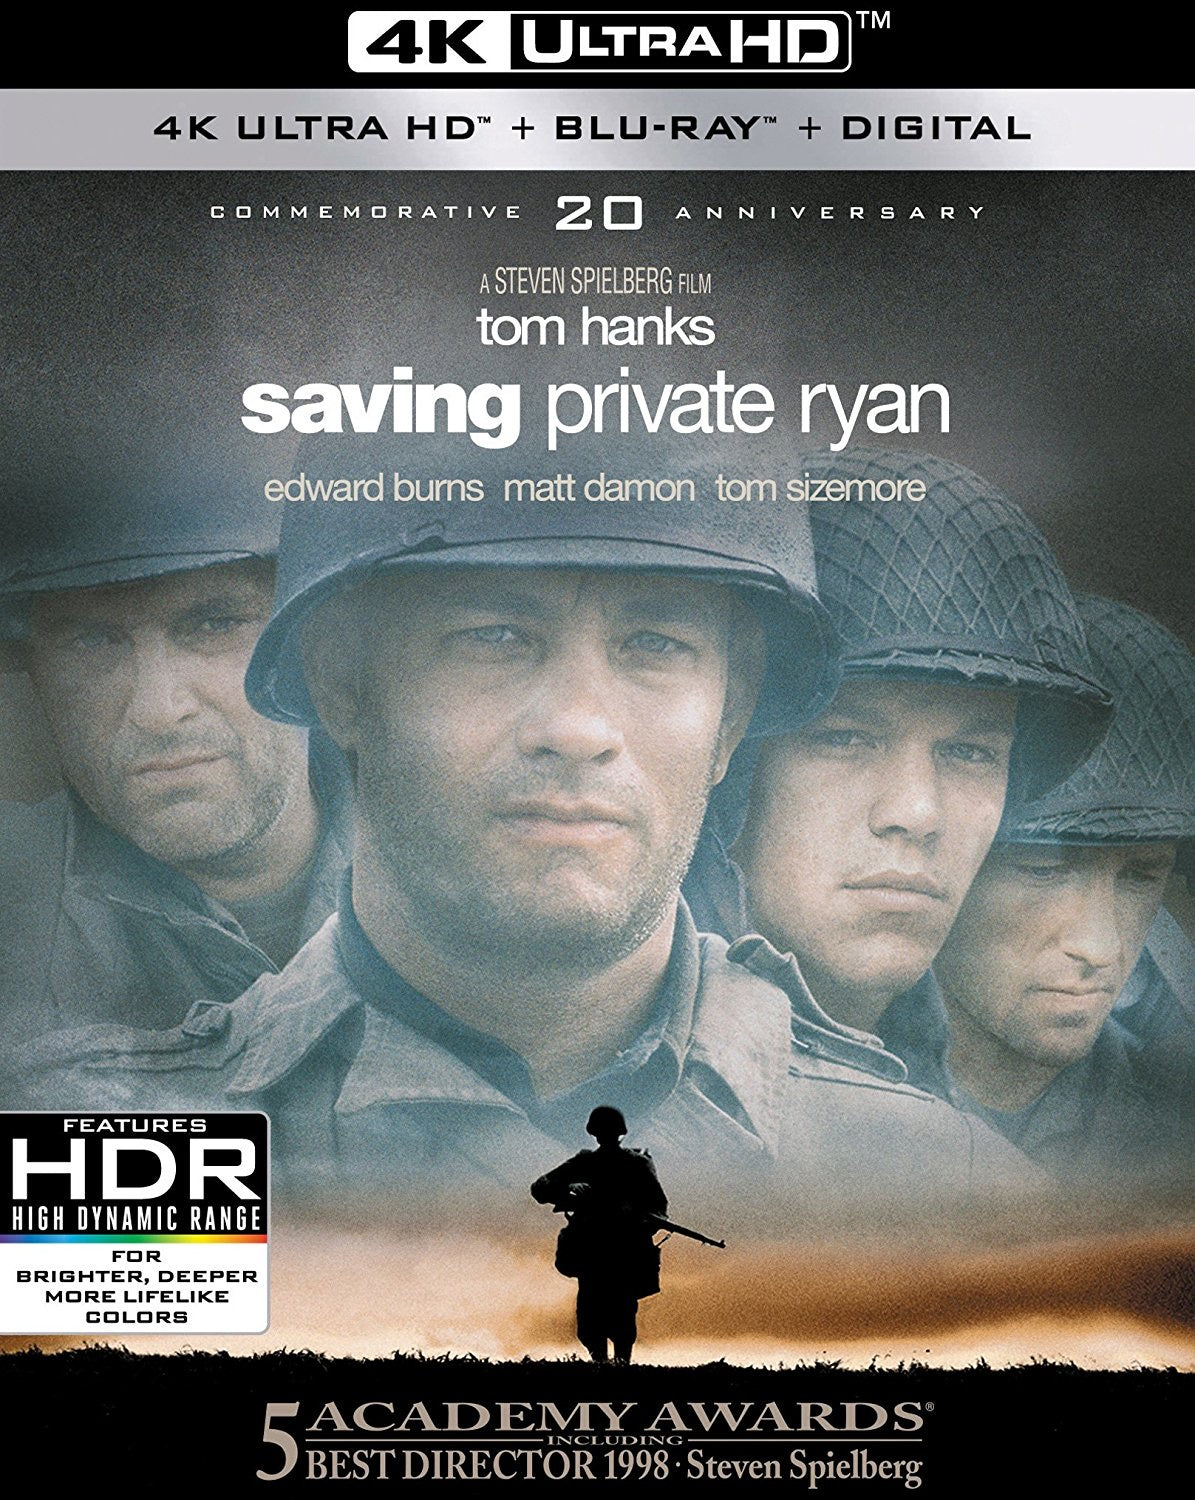 Saving Private Ryan iTunes 4K redemption only